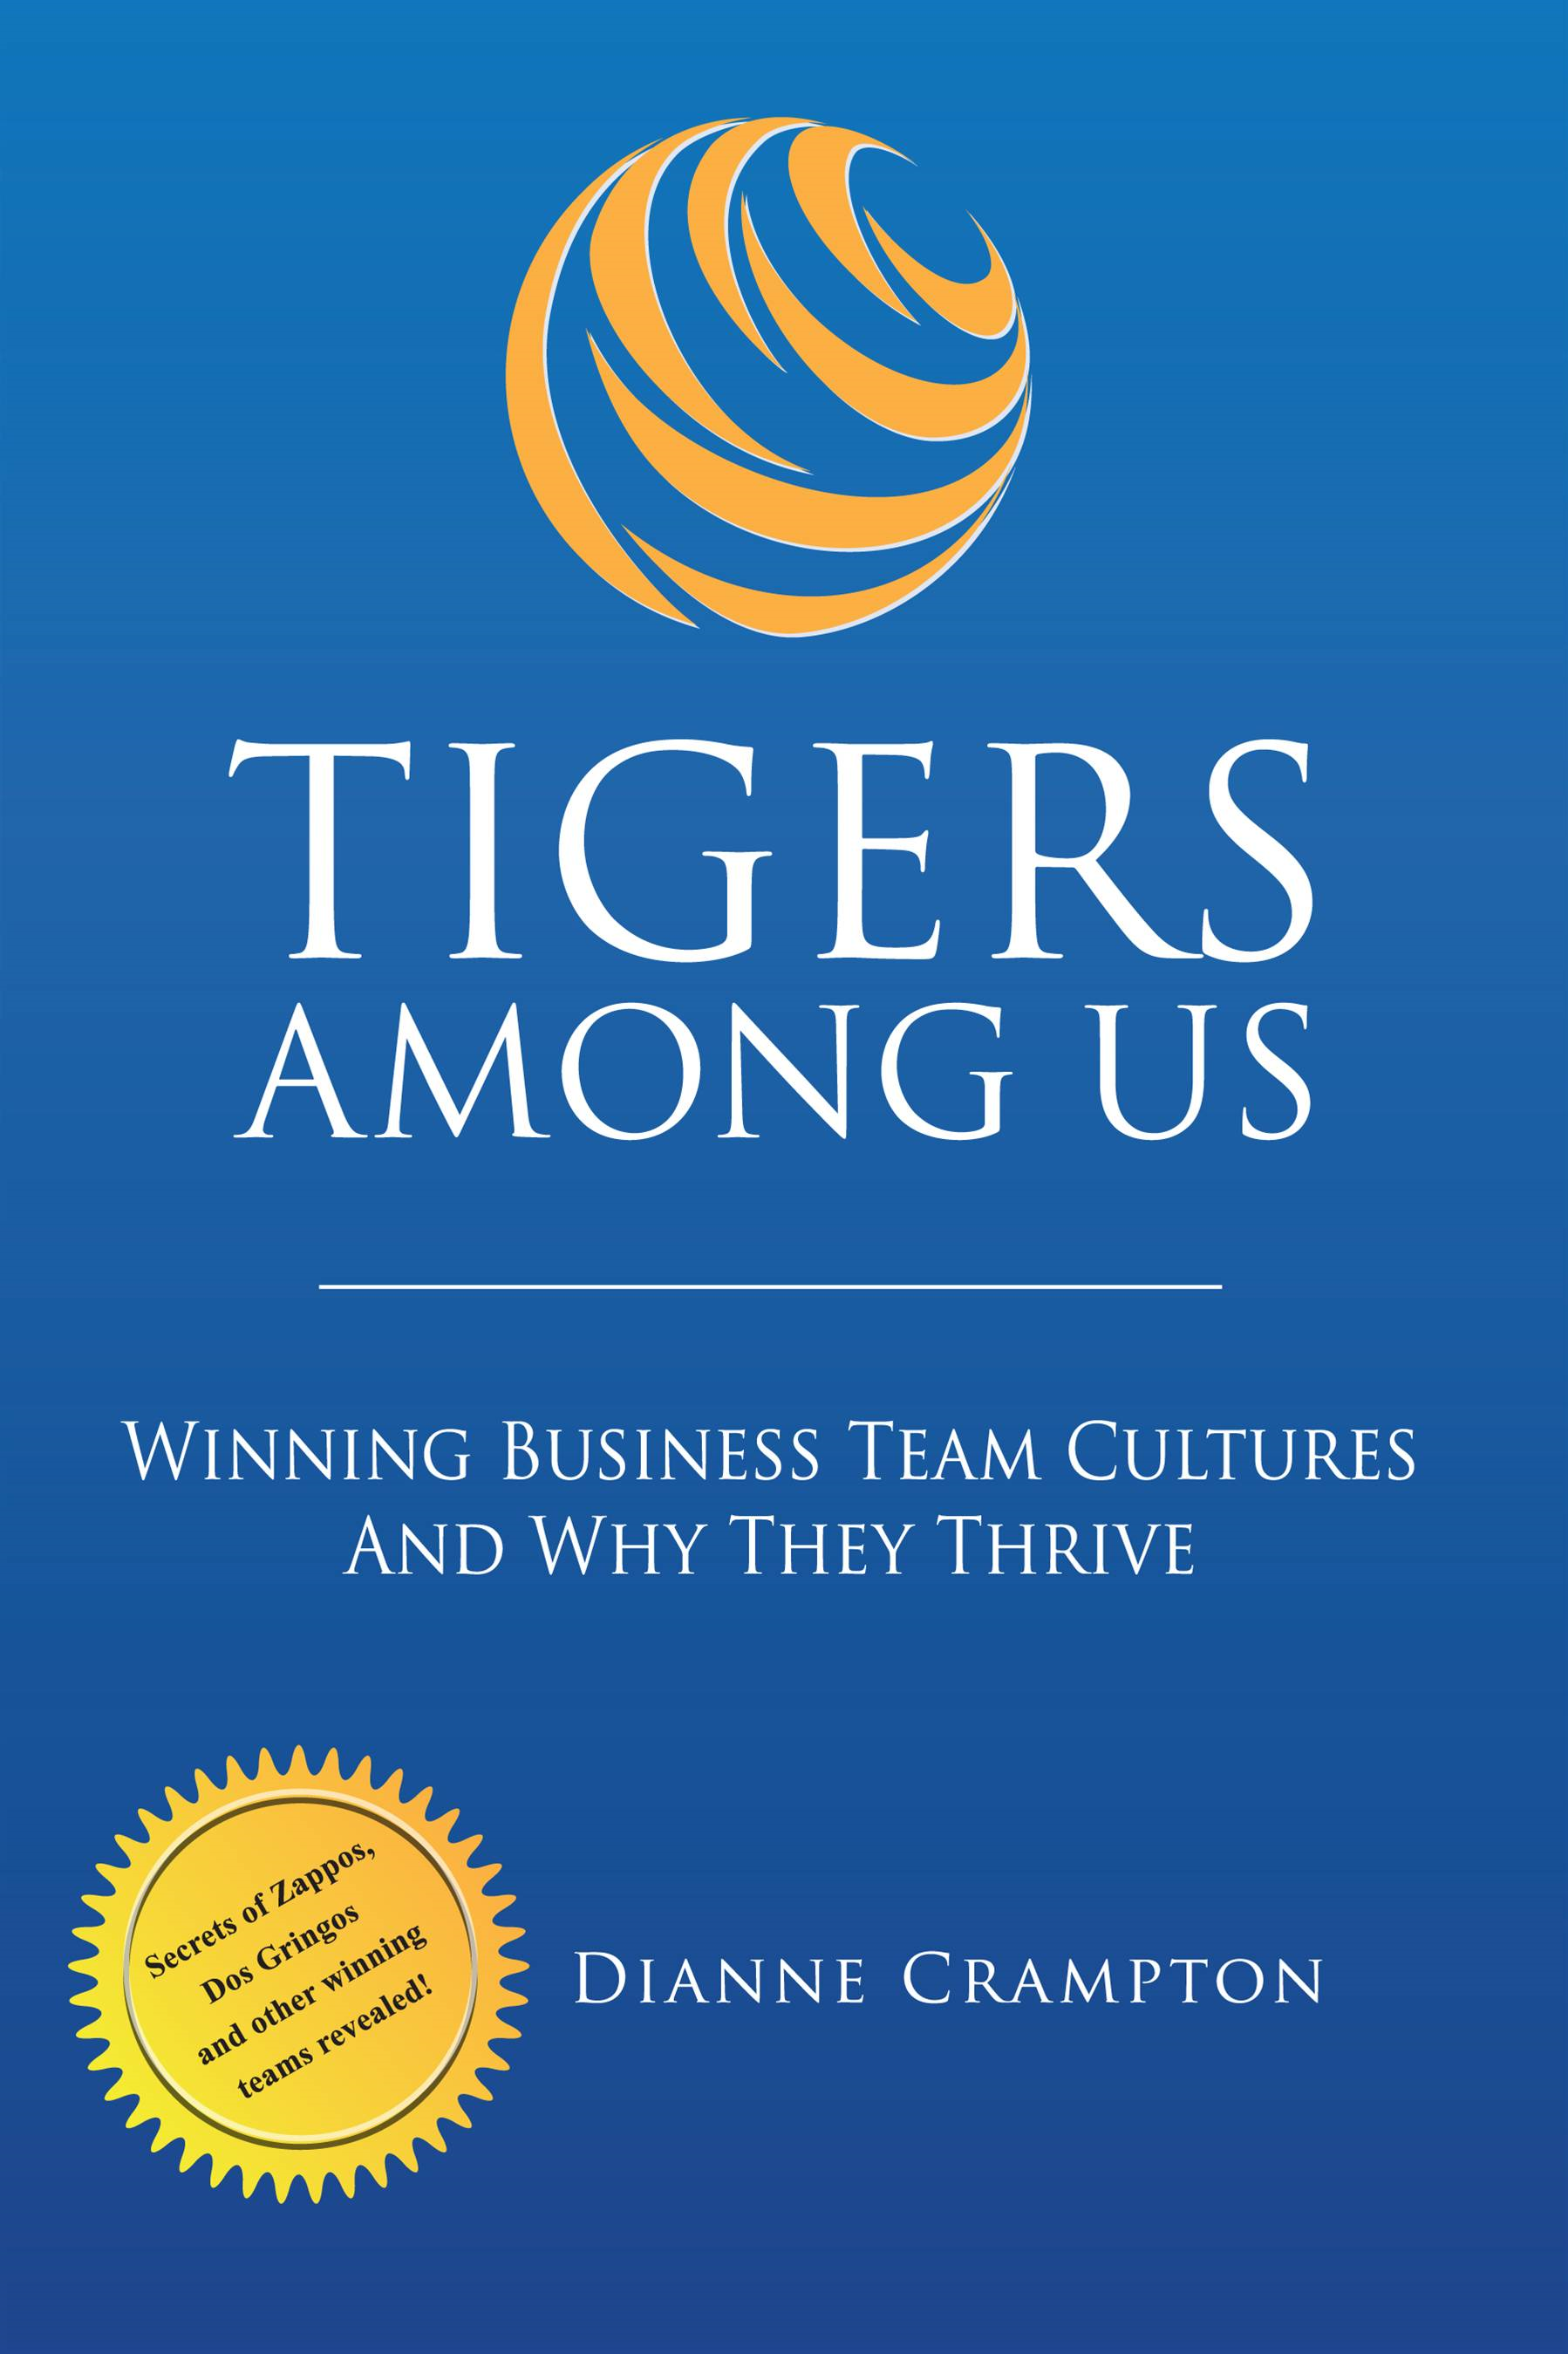 TIGERS Among Us: Winning Business Team Cultures and Why They Thrive